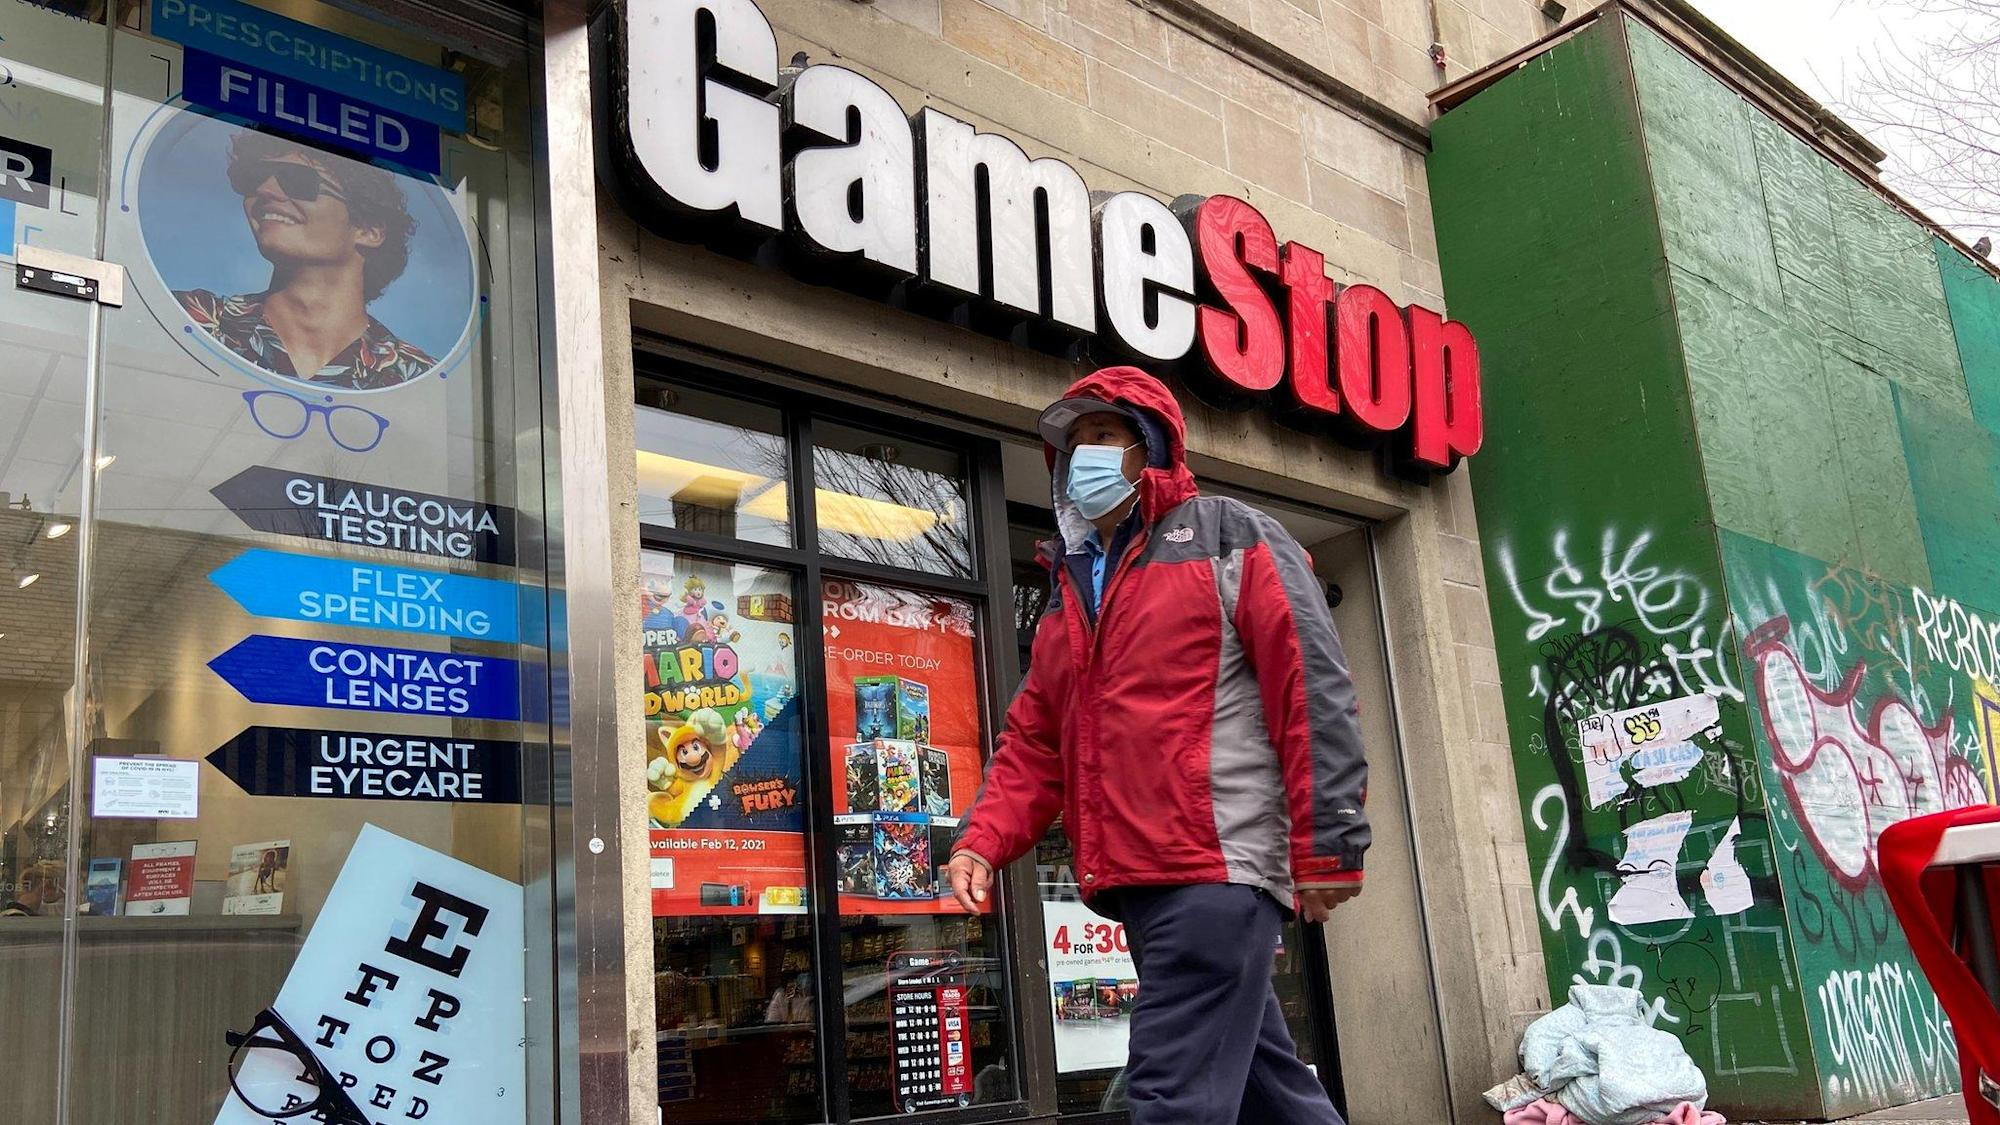 Gamestop Trade Clash Roils the Market, but Economic Fundamentals Will Prevail